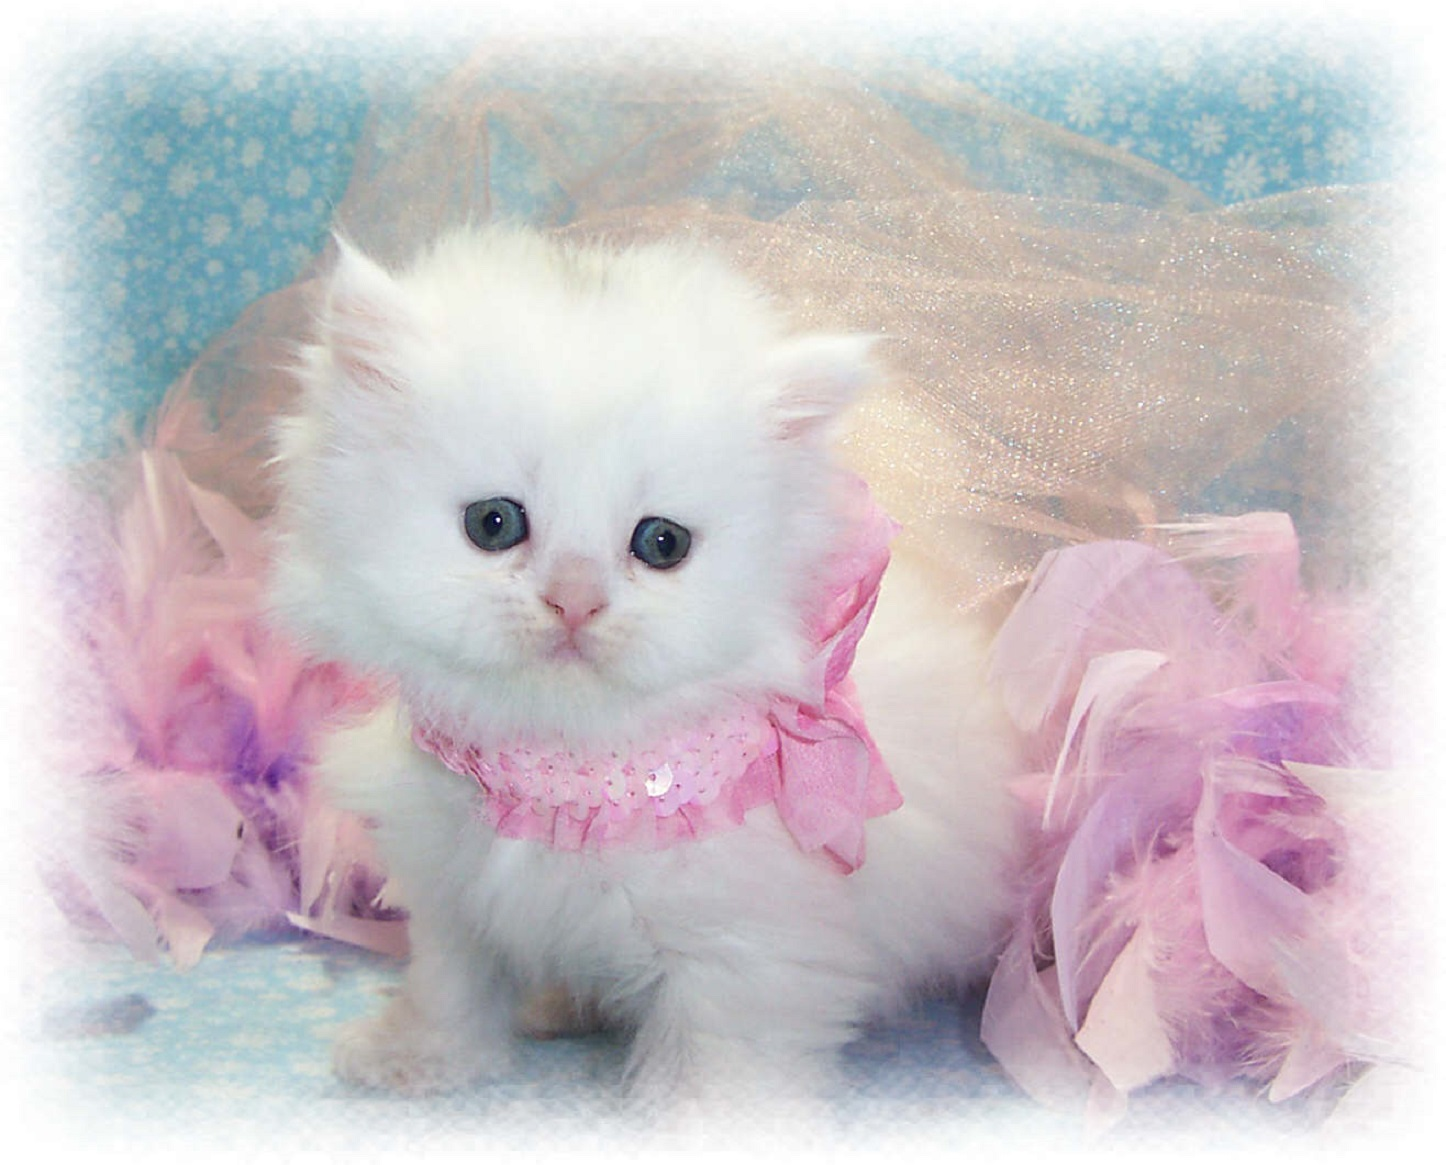 beautiful kittens & cute cat images & wallpapers free download